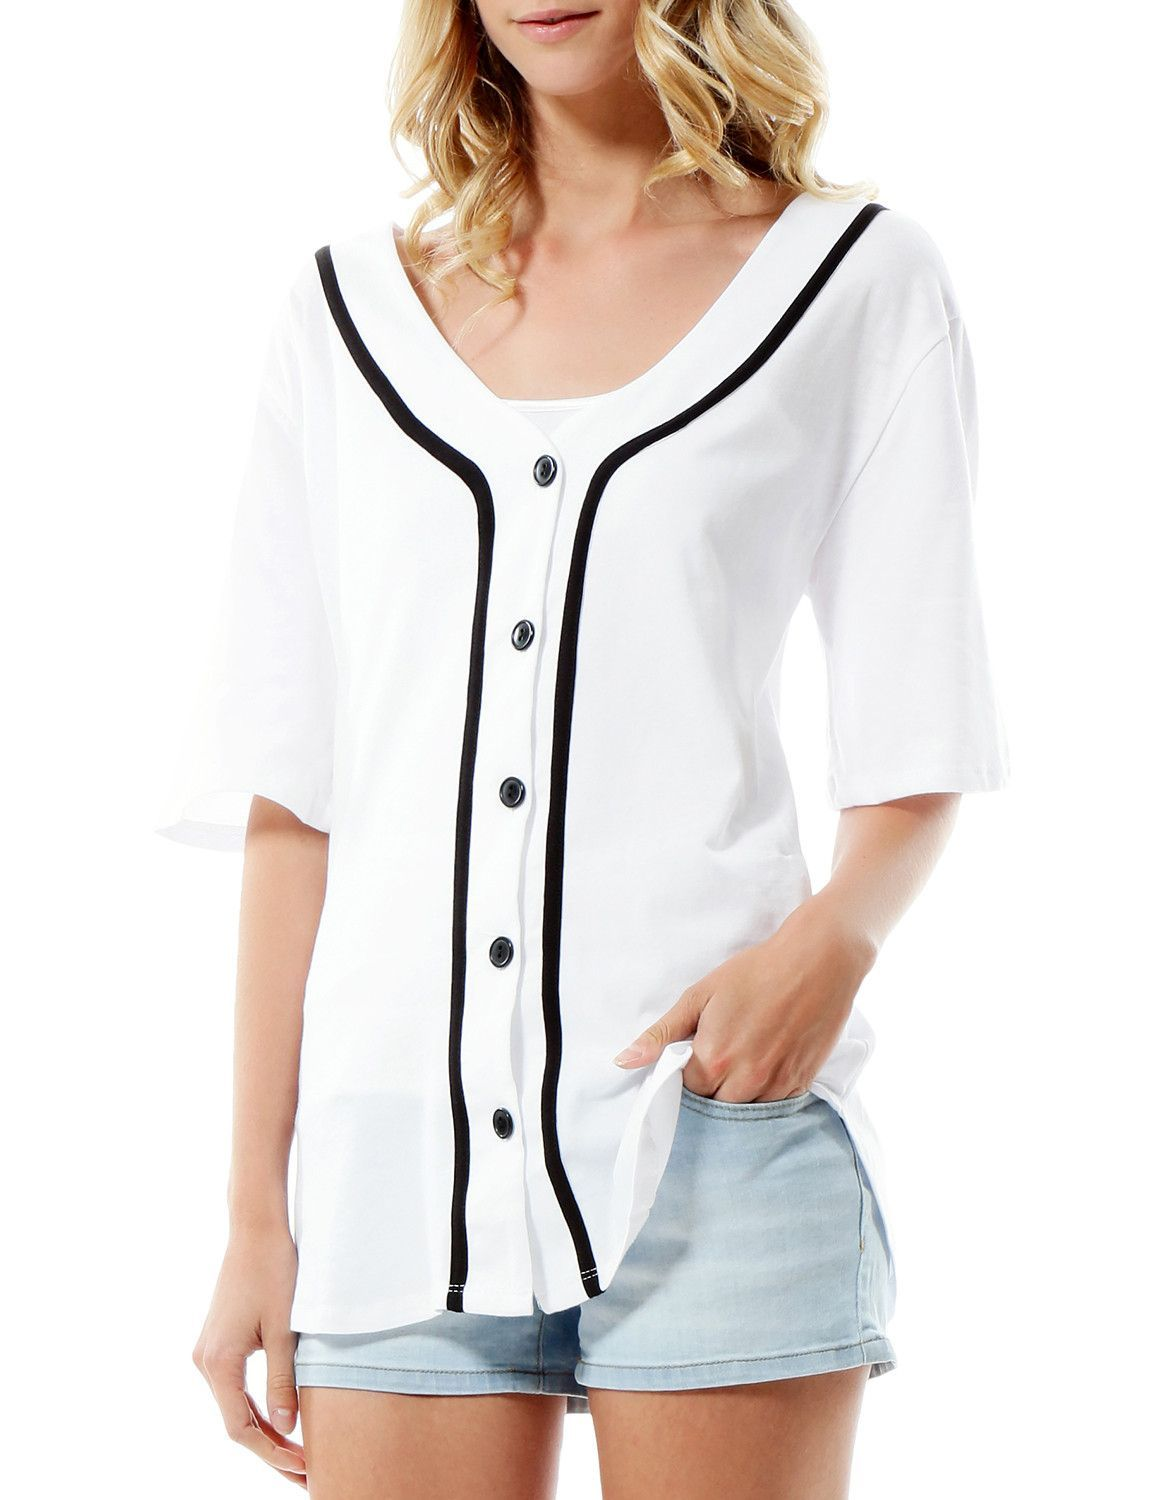 2f55711e4 Ladies, no need to borrow your man's jersey to the games anymore. This oversized  button down short sleeve baseball tunic shirt is both comfortable and cute.